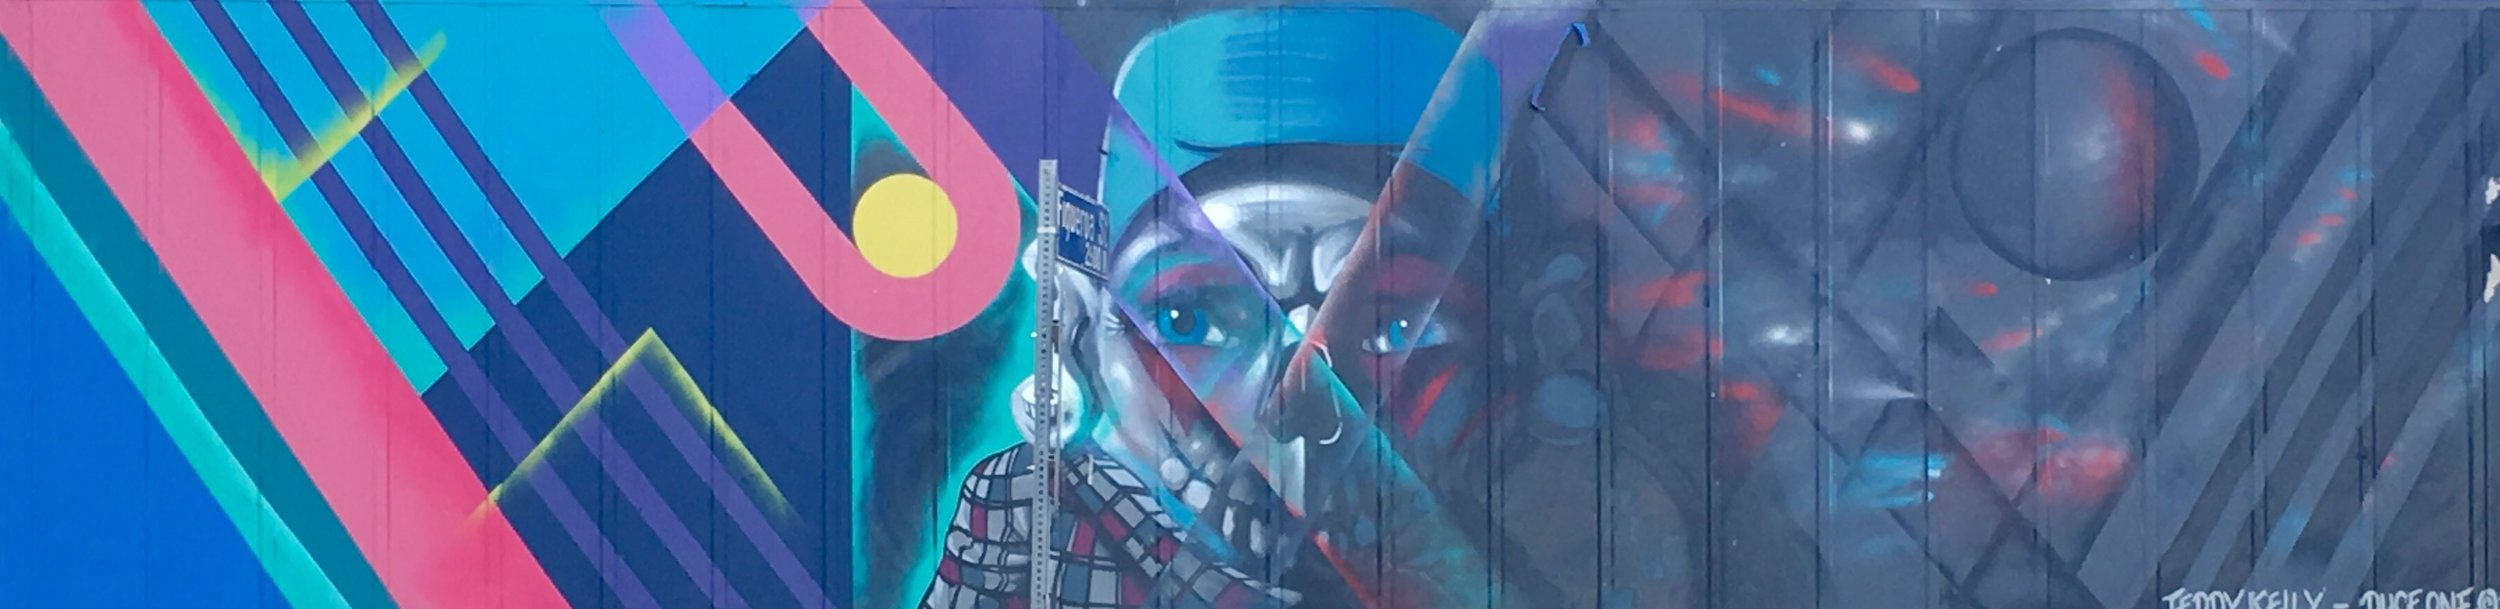 Collaboration with: Teddy Kelly  Spray paint on wall